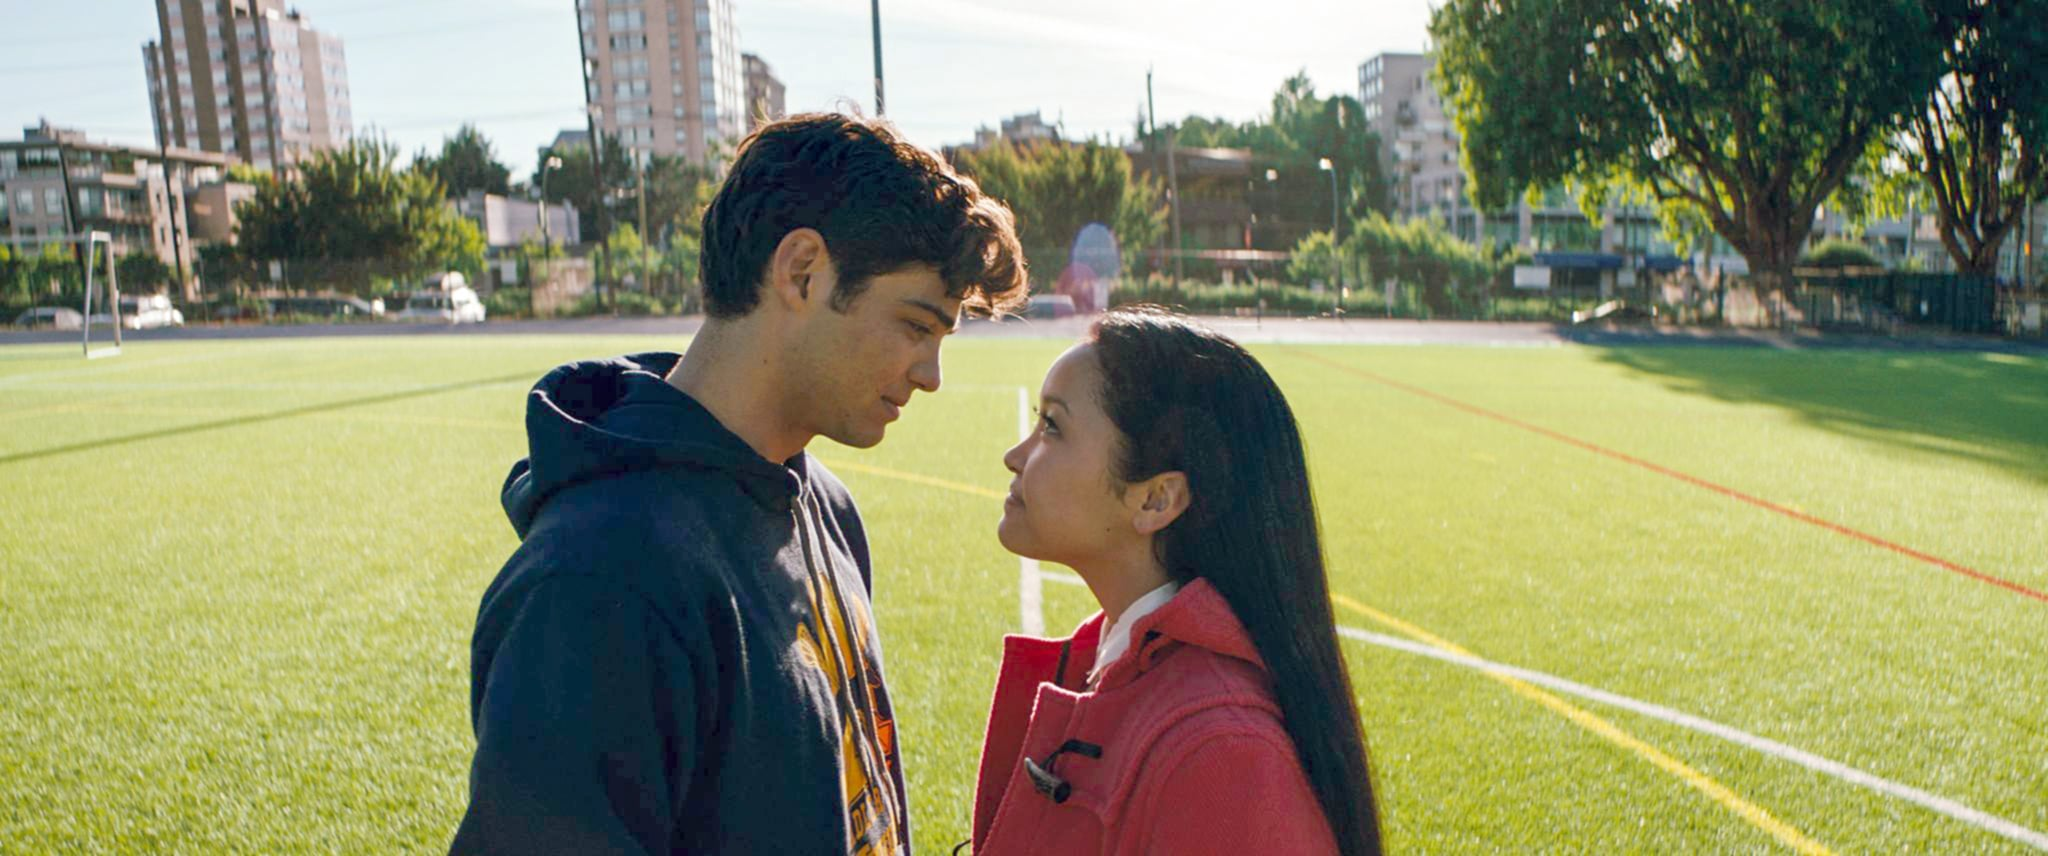 To All the Boys Ive Loved Before: Netflix Drama that Stirs Teenage Vibes